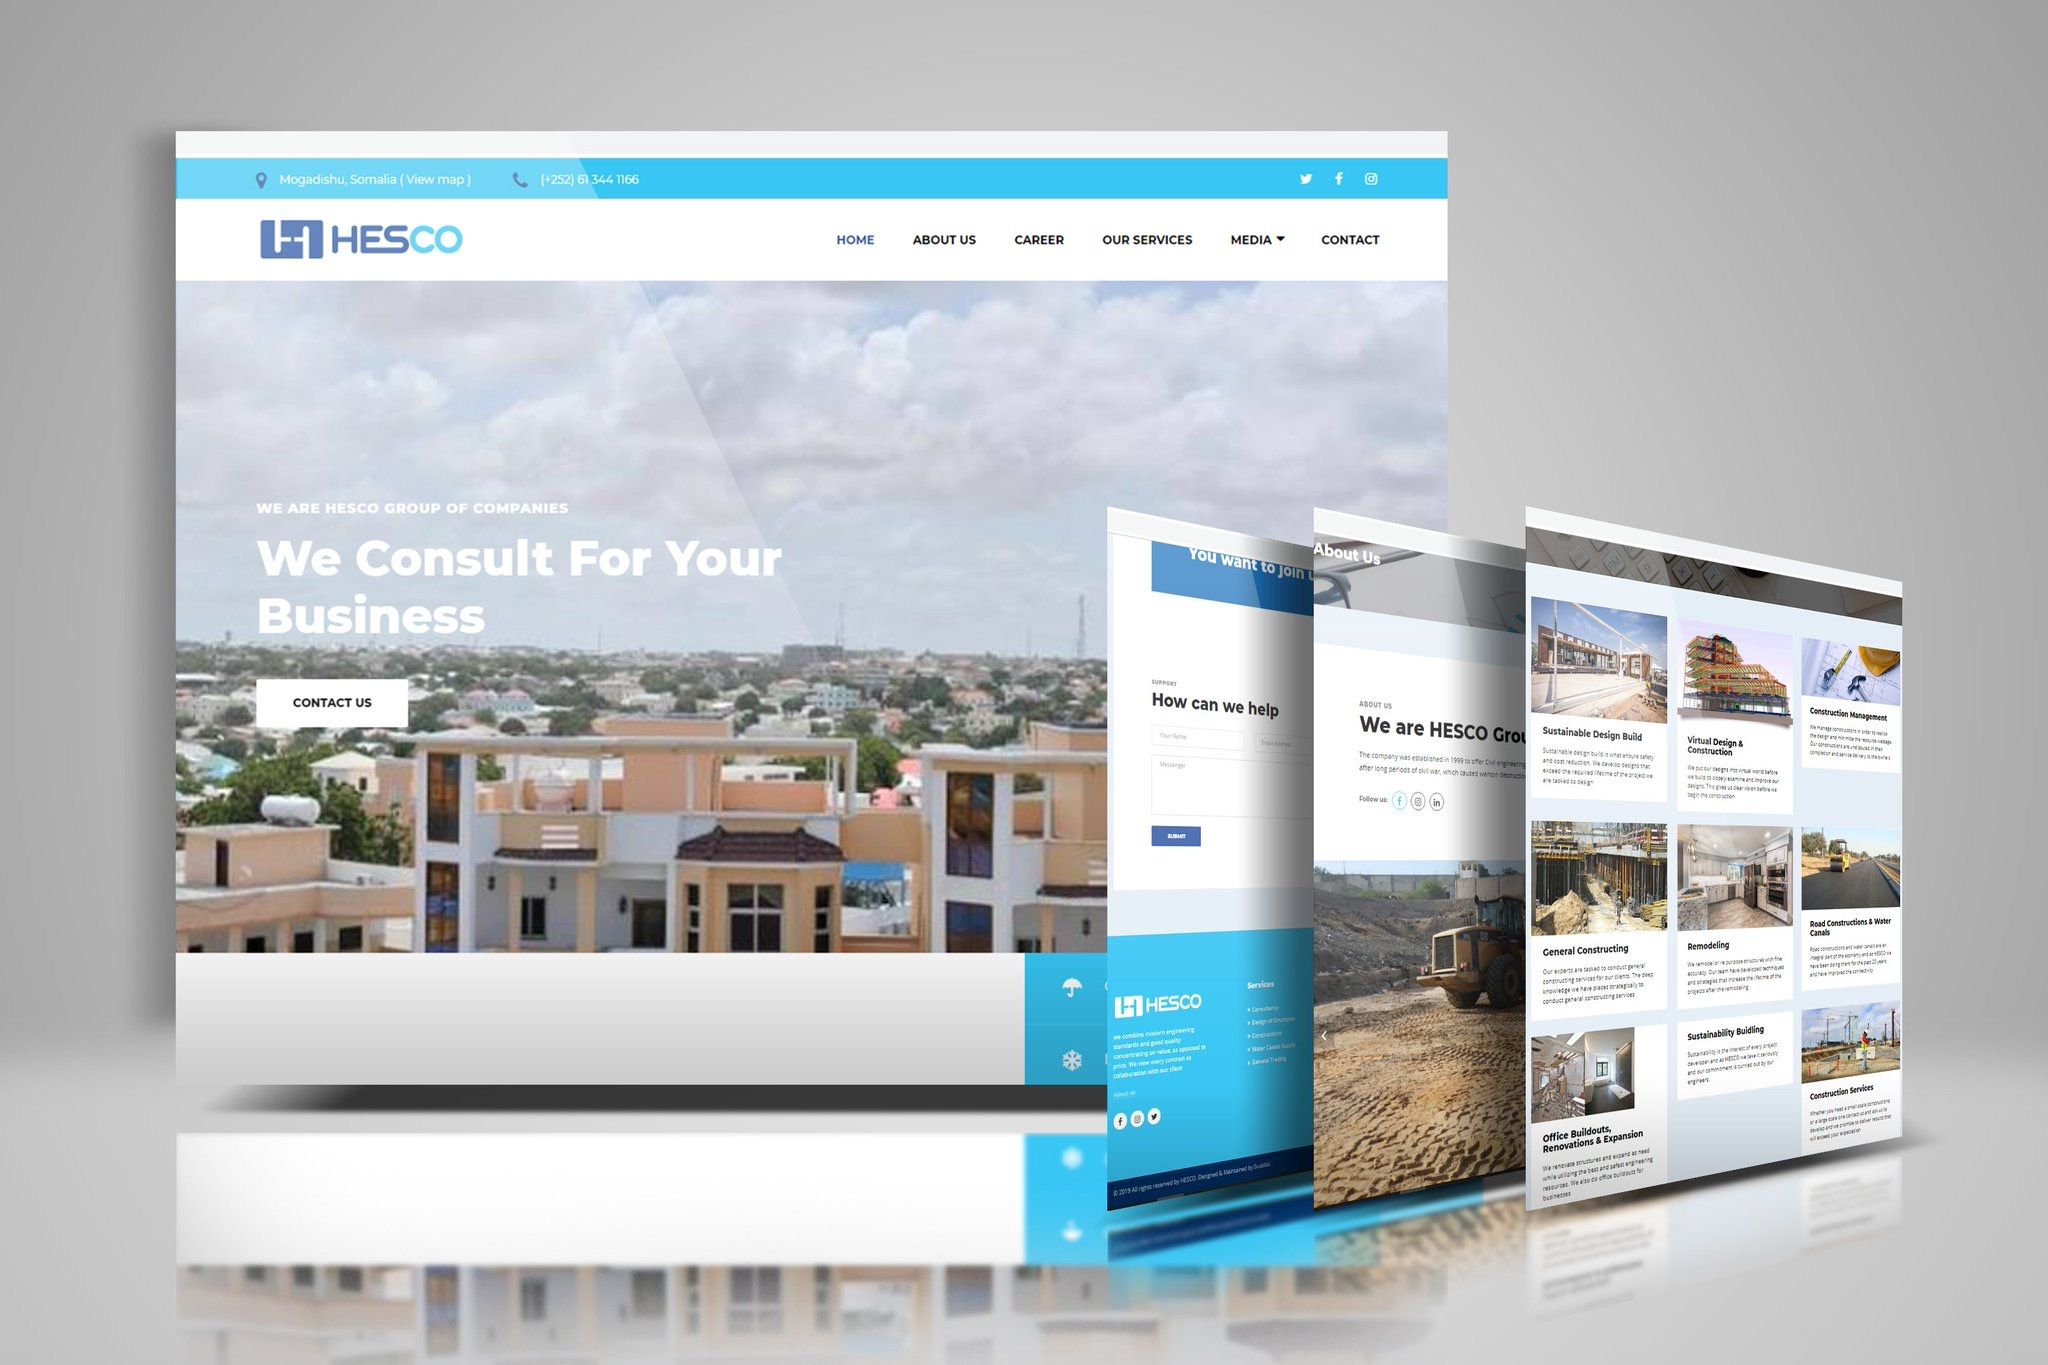 Check Out Hesco So A Well Crafted Art Made By Our Team Suubbis Join Our Satisfied Clients Today To Unleash Your Brand Webhosting Digital Marketing Services Domain Hosting Building A Website